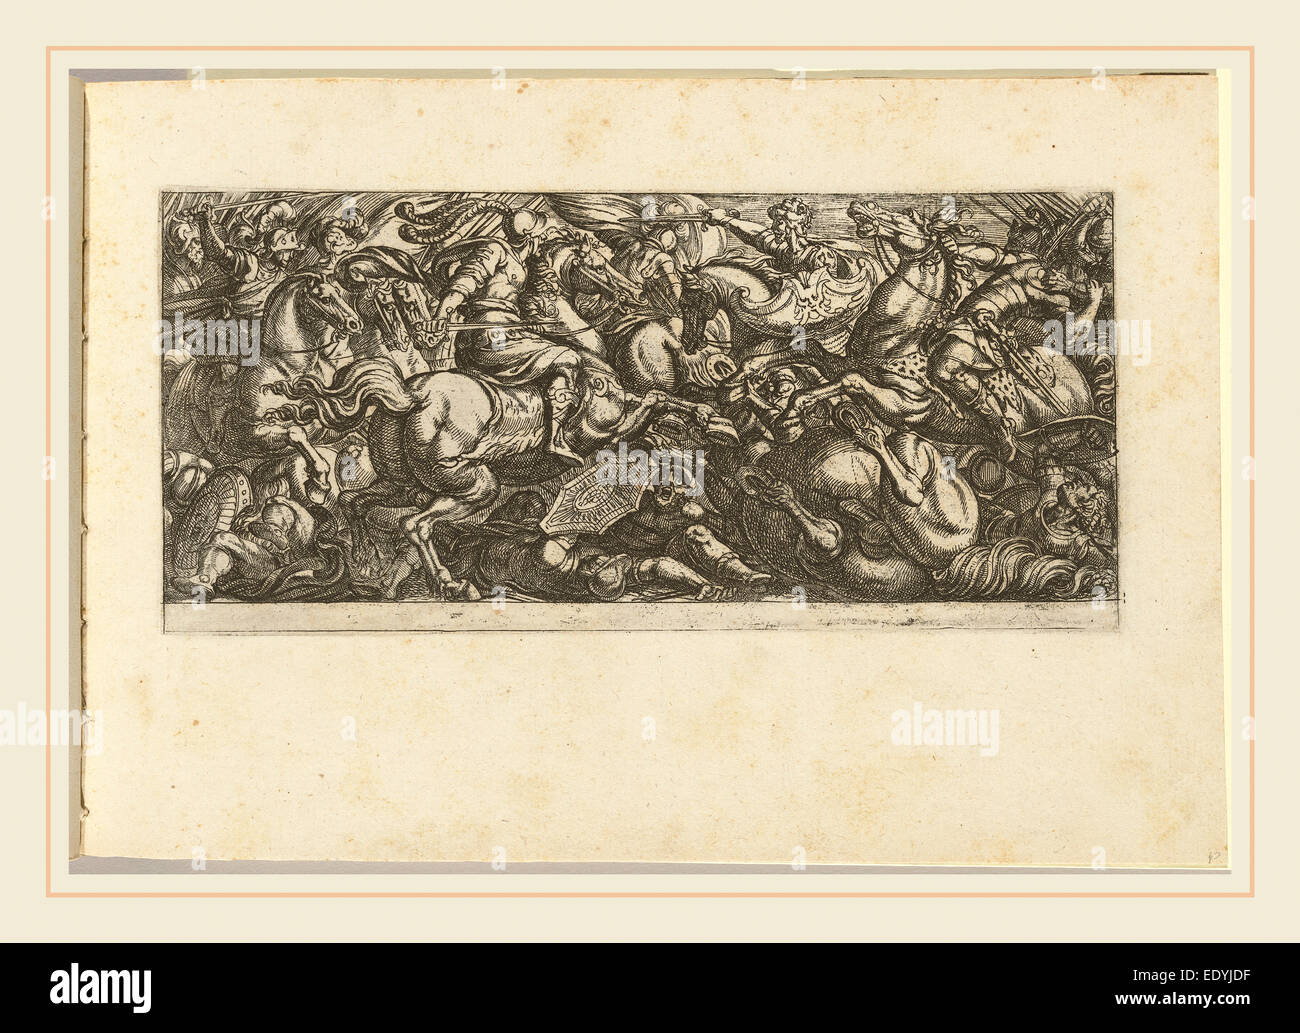 Antonio Tempesta, Italian (1555-1630), Cavalry Charge with Soldiers and Horses Trampled, etching Stock Photo